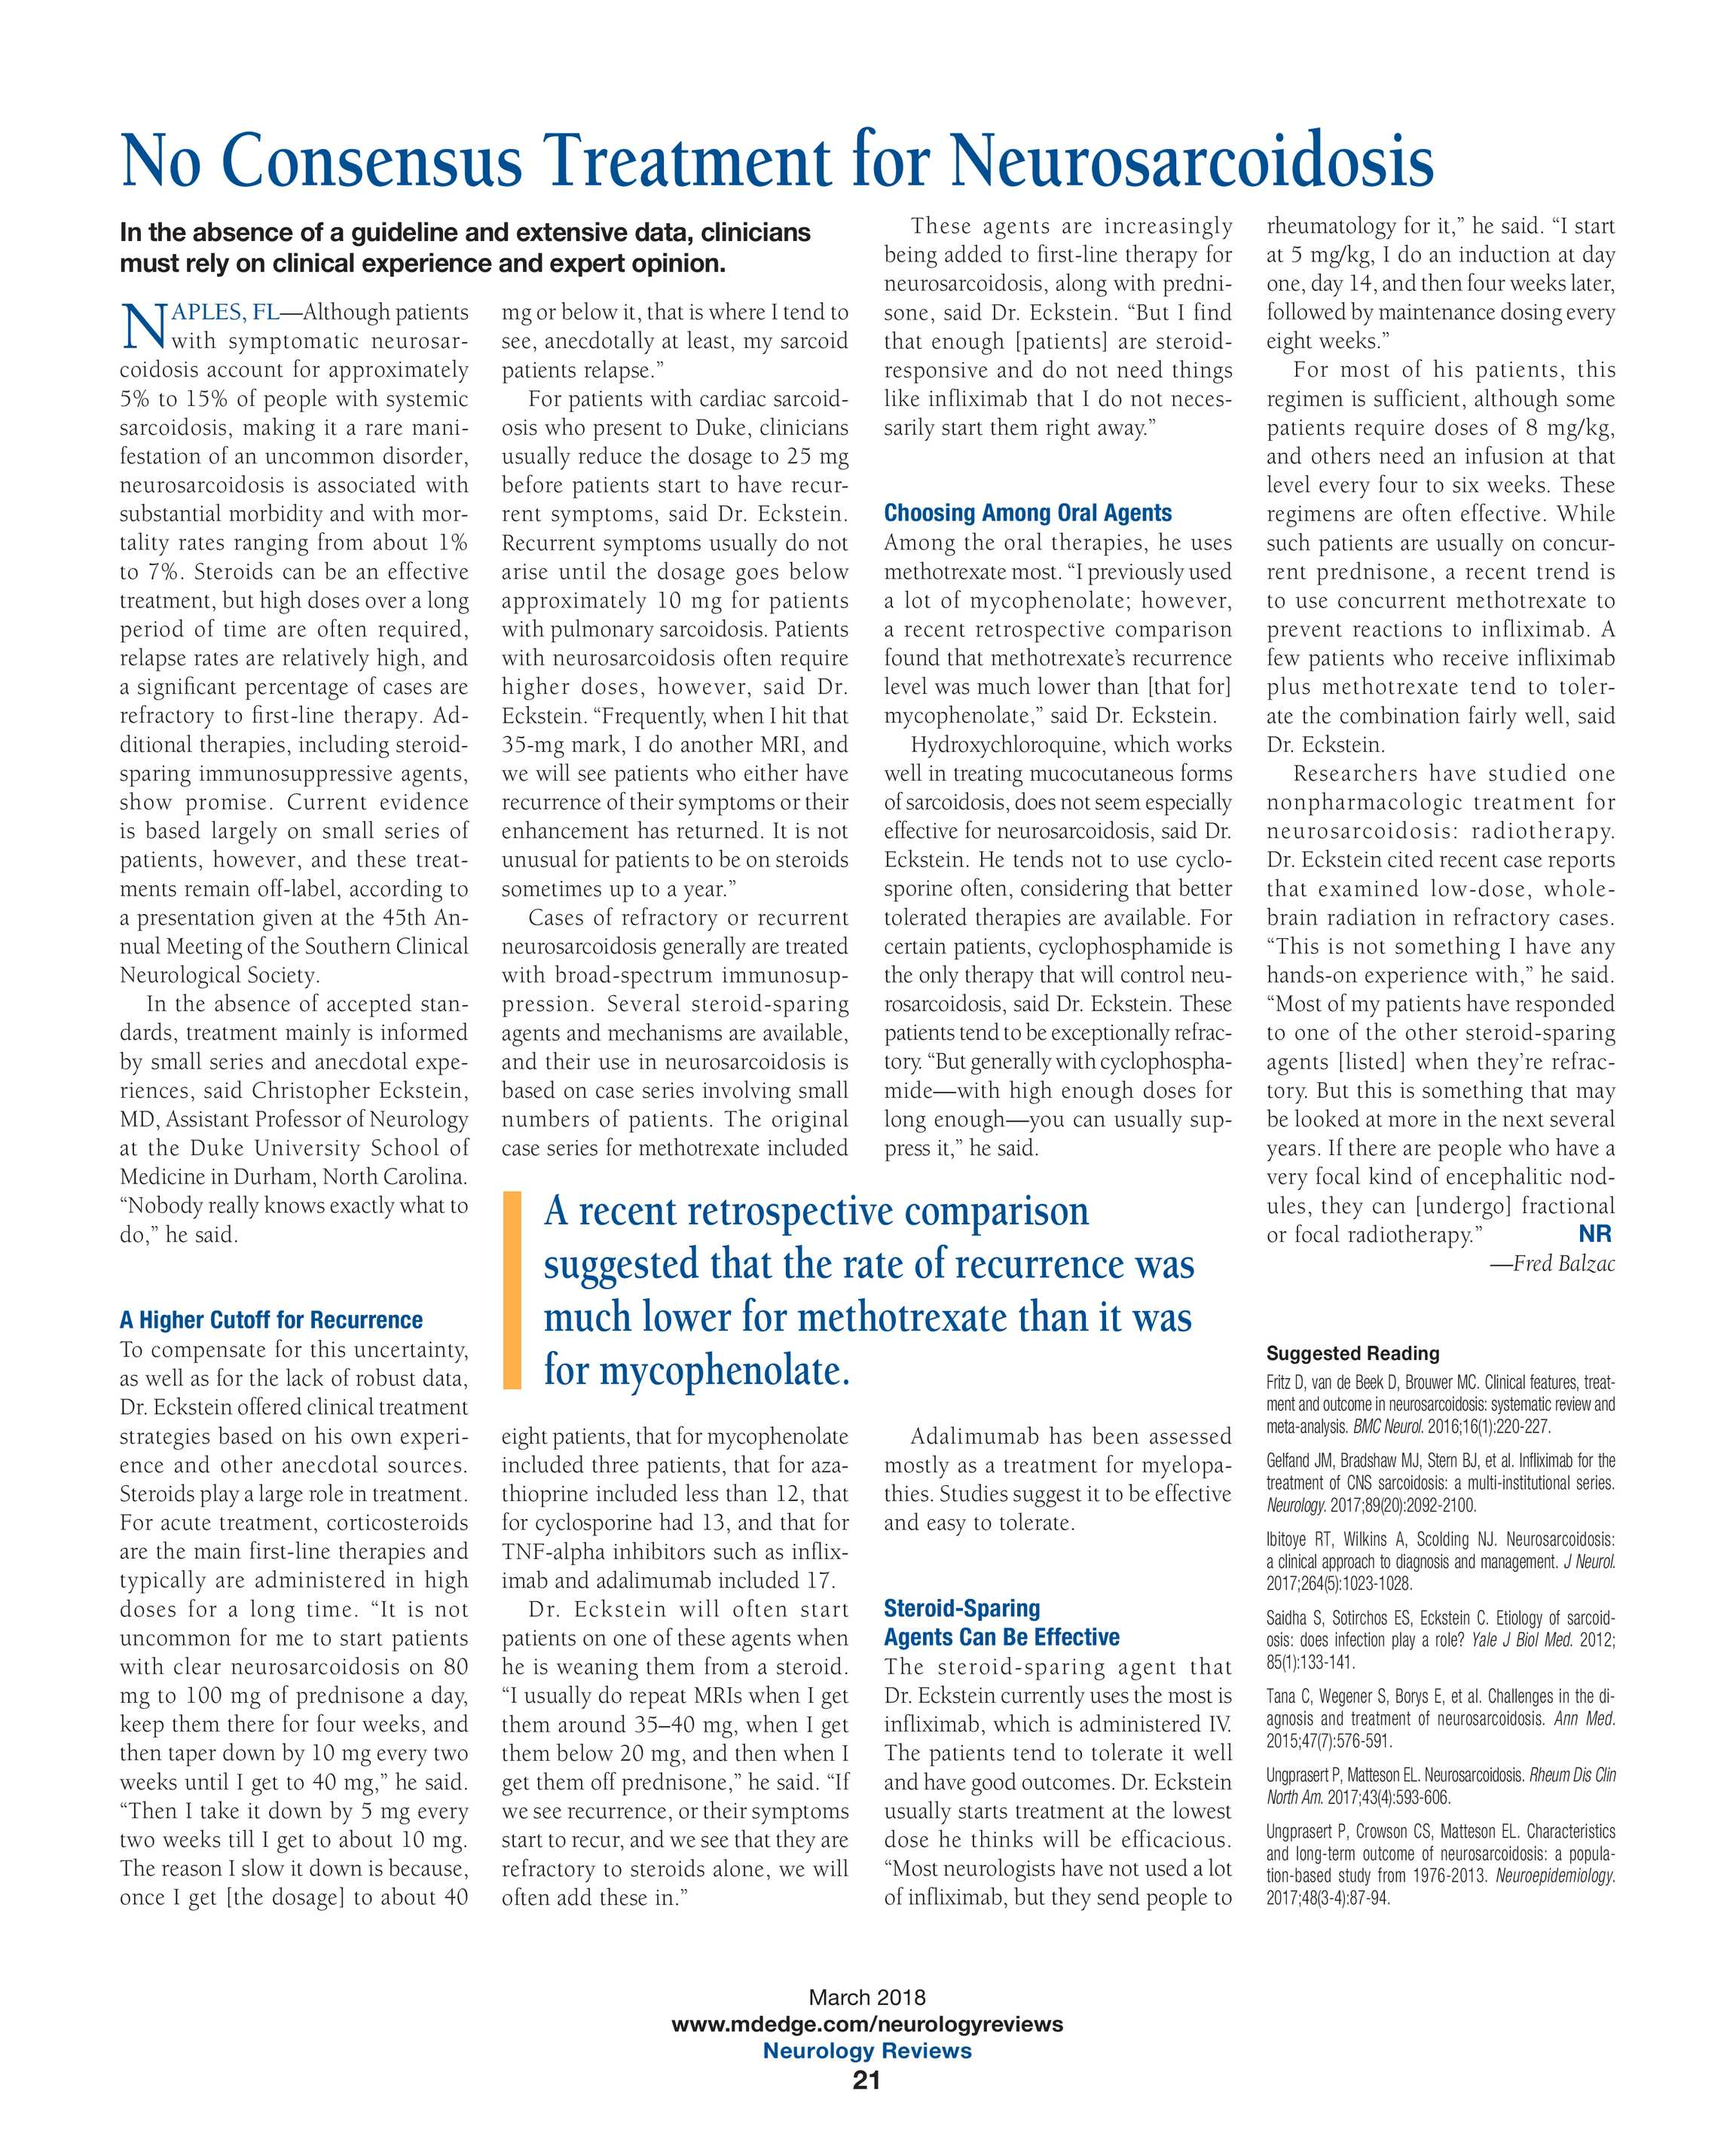 Neurology Reviews - March 2018 - page 20